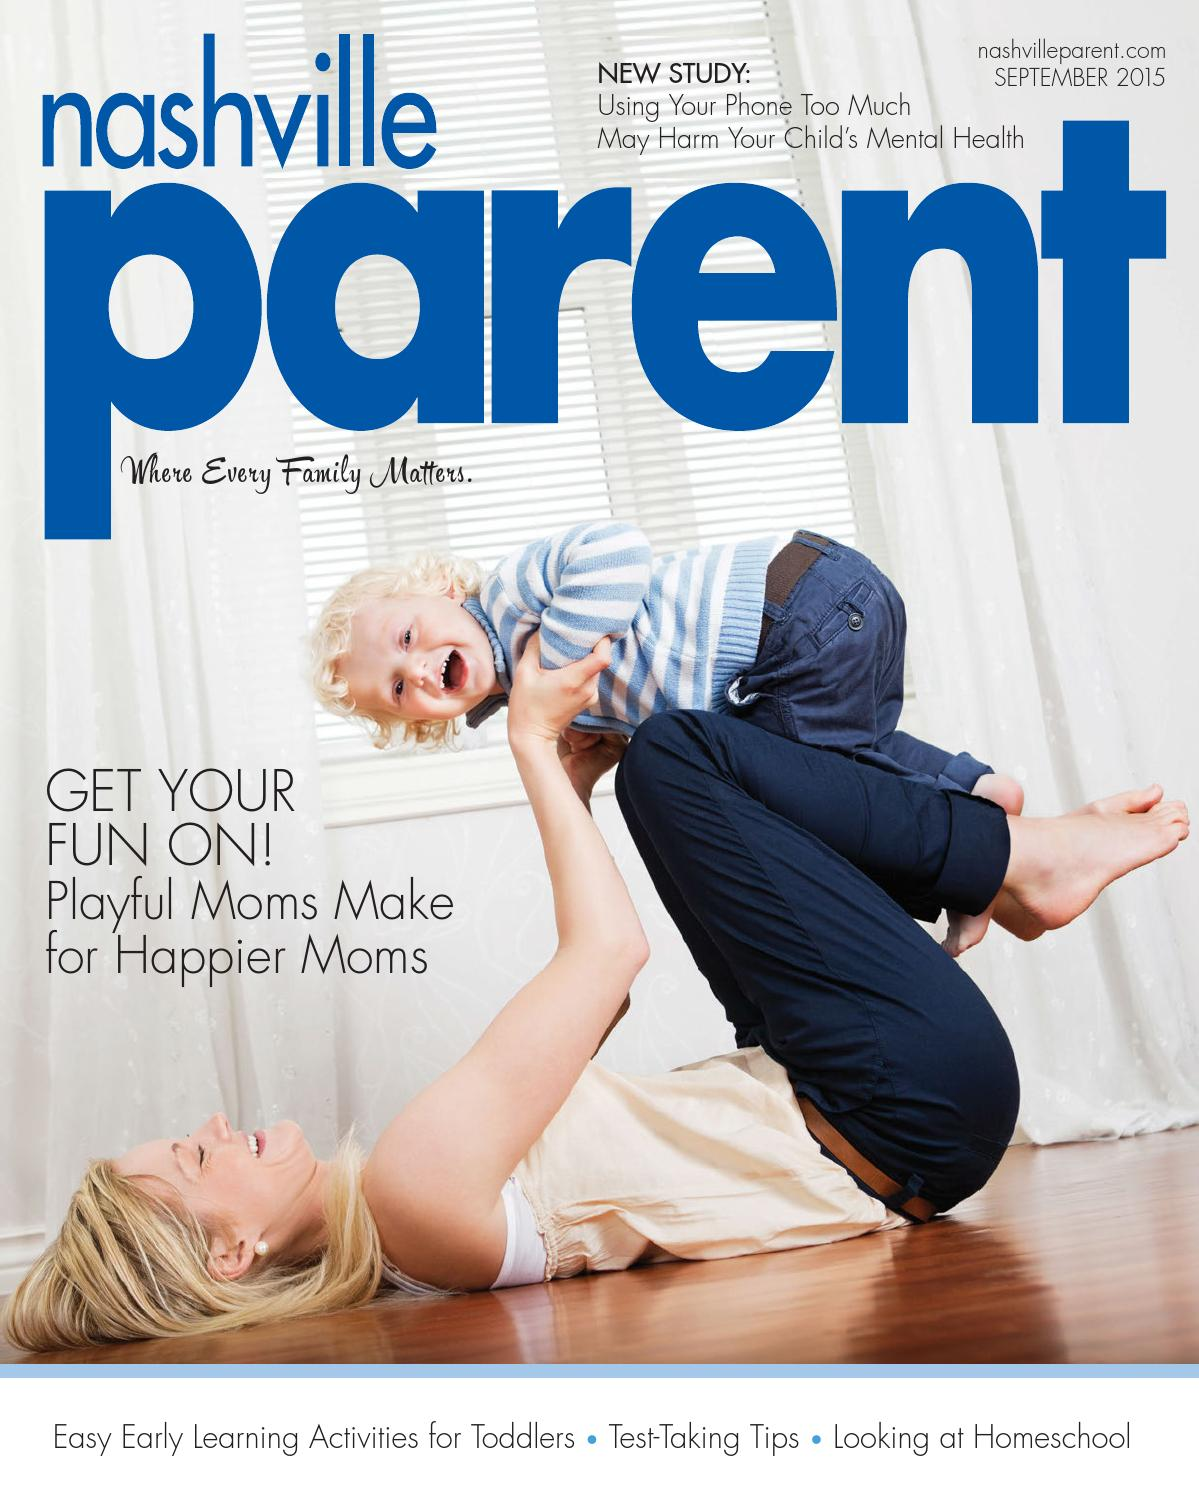 Np0915 By Day Communications Daycom Media Issuu Electronics Learning Circuits Stem Homeschooling Pinterest